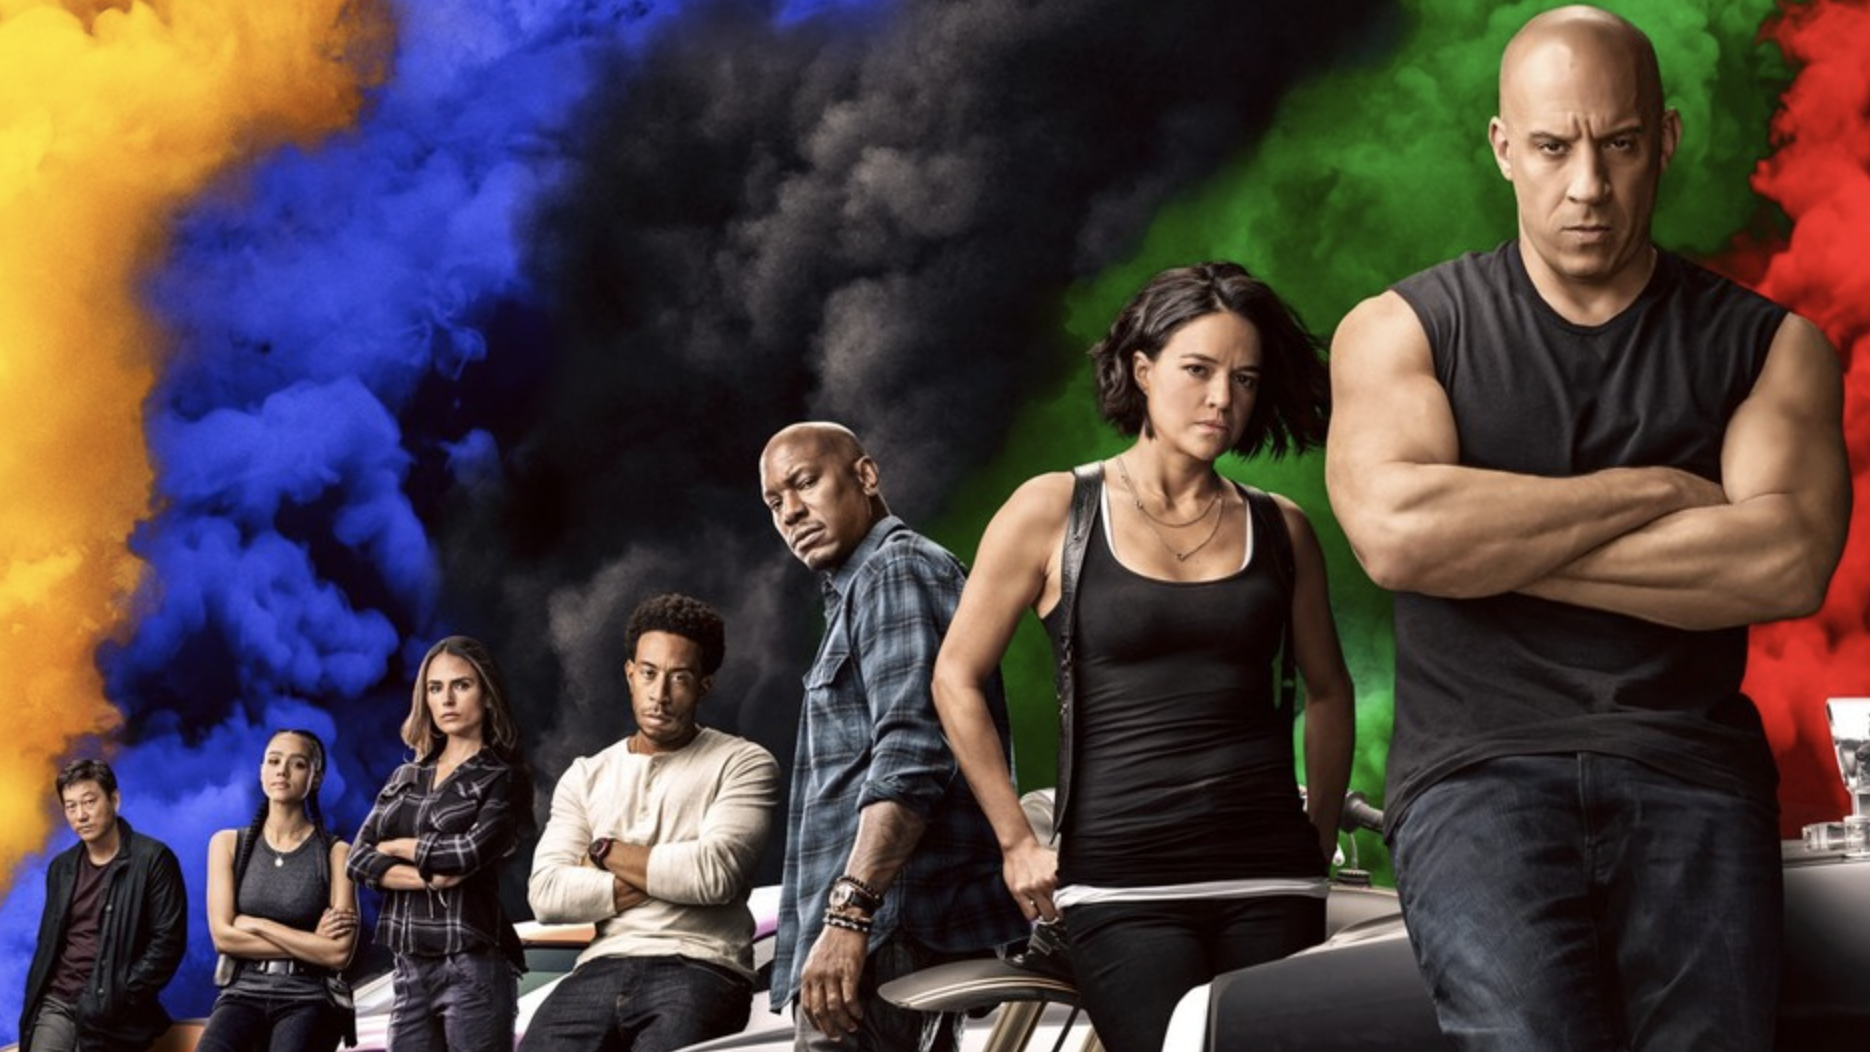 Fast and Furious participation revealed that will leave fans jaw-dropping